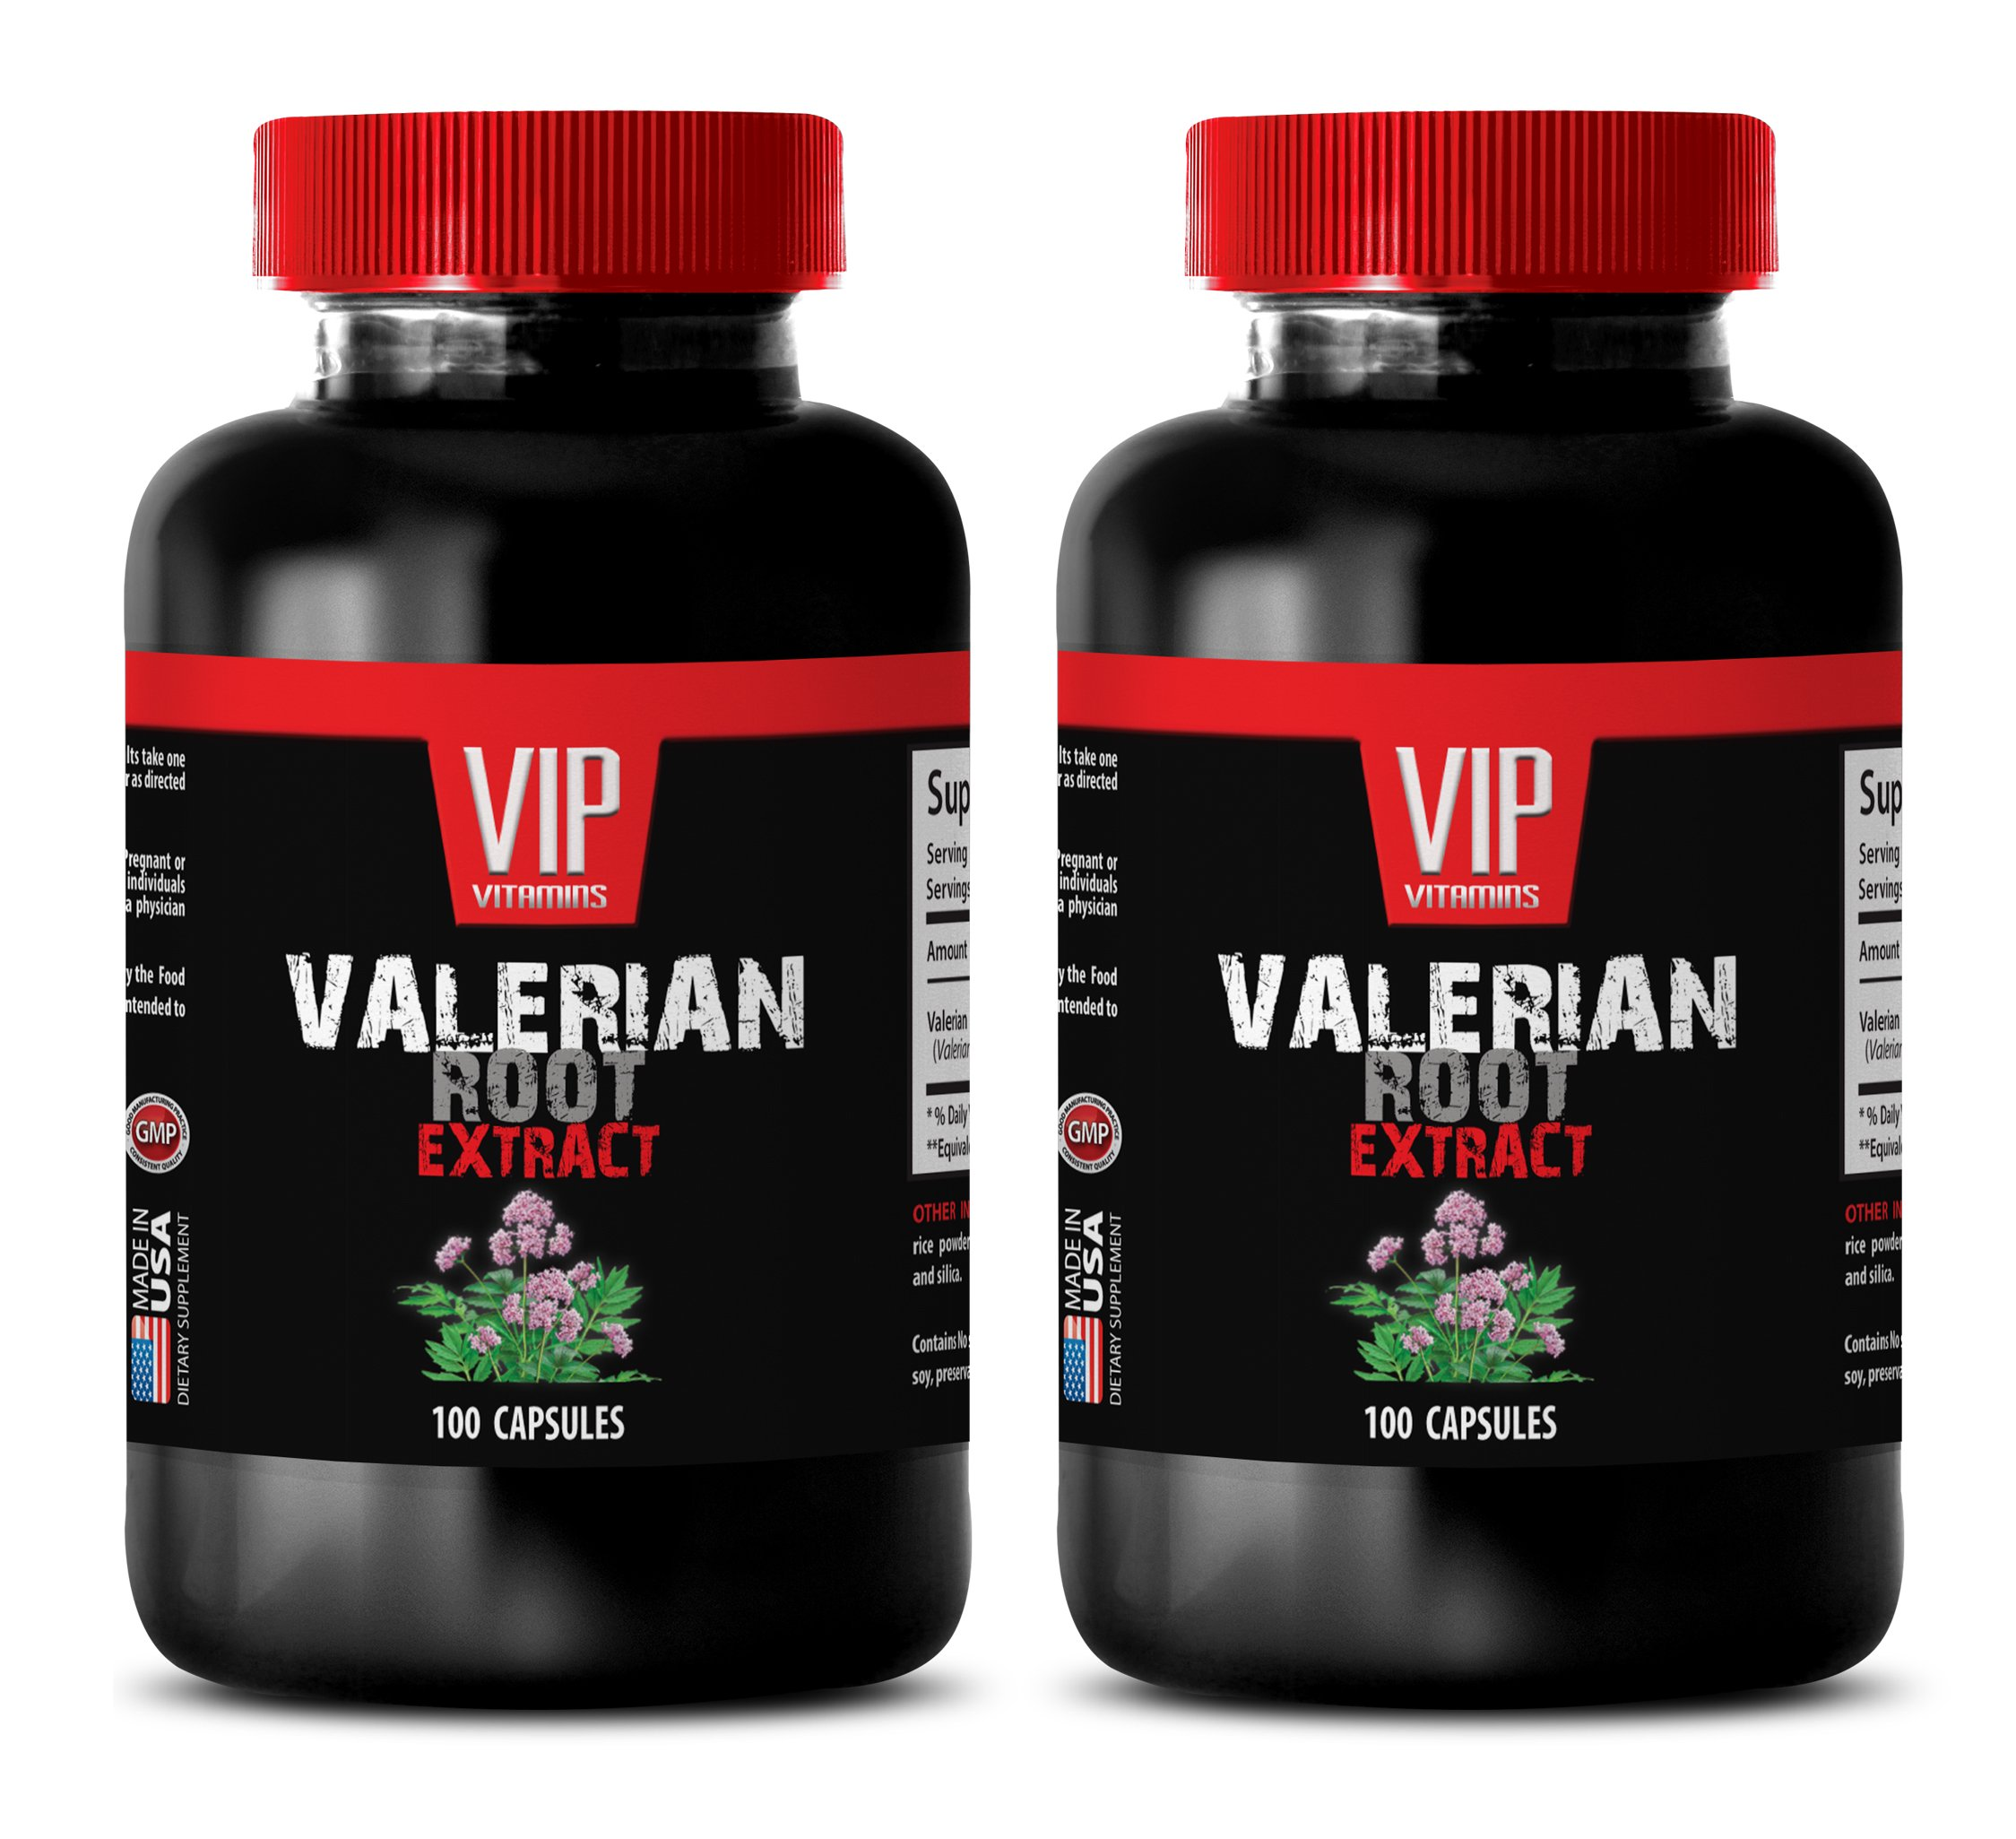 blood pressure natural supplements - VALERIAN ROOT EXTRACT 125MG - valerian natures answer - 2 Bottles (200 Capsules)